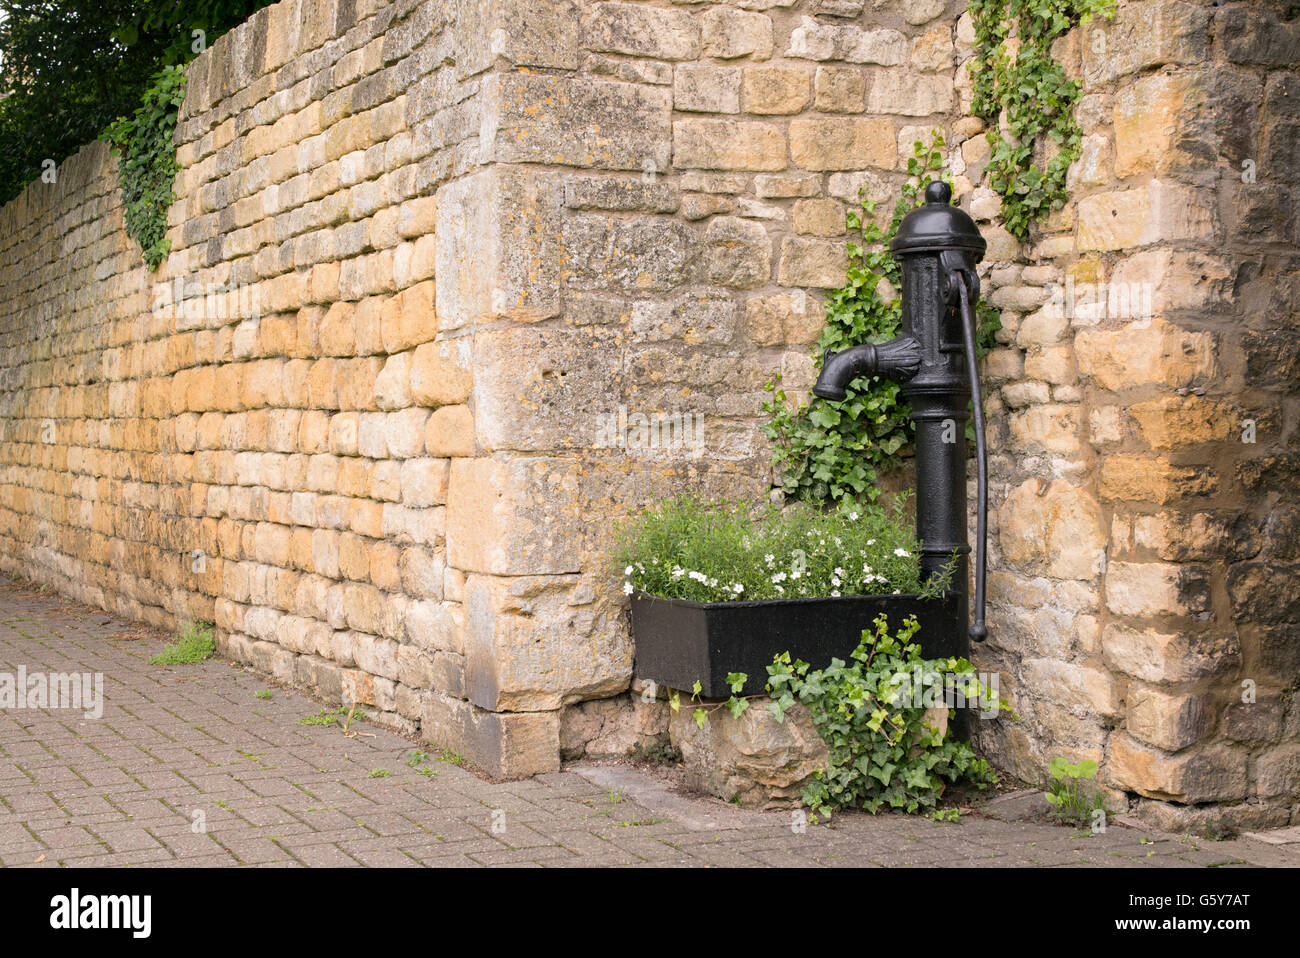 Old cast iron hand water pump and trough with flowers on the street in in Chipping Campden, Gloucestershire, England Stock Photo